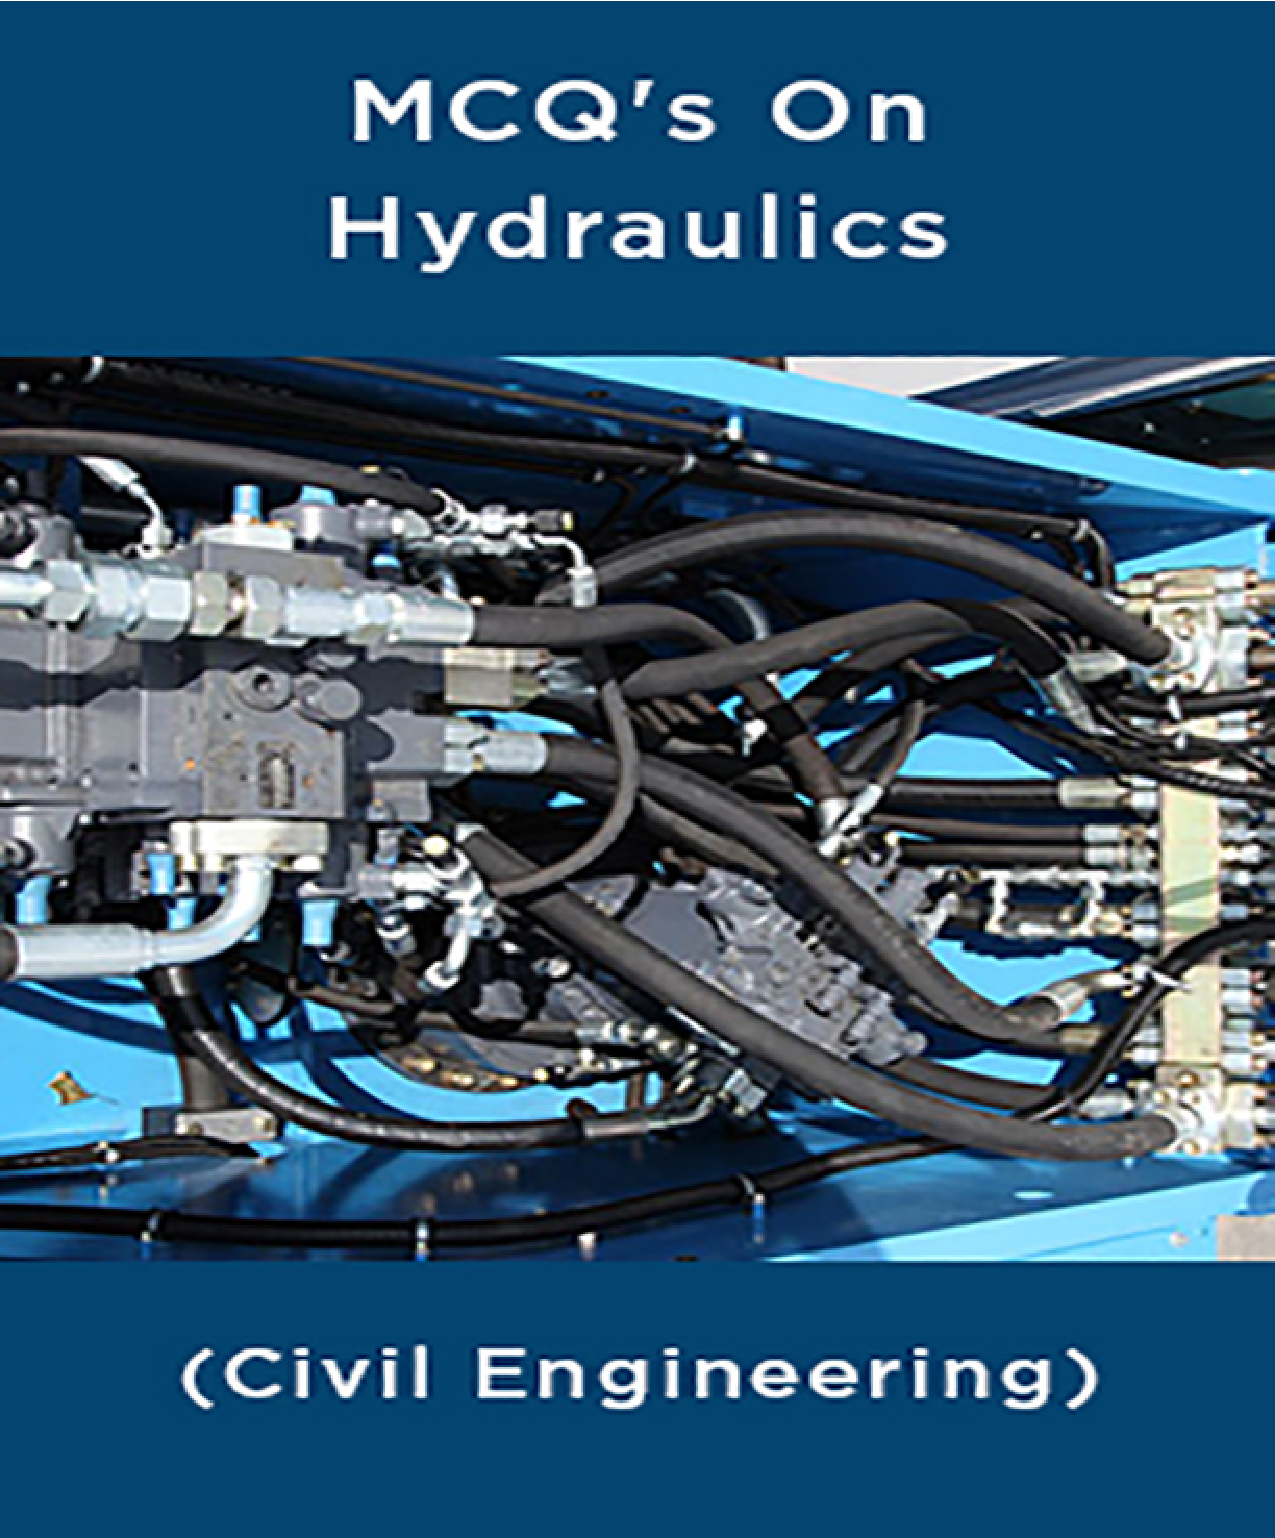 MCQ's On Hydraulics (Civil Engineering) - Page 1